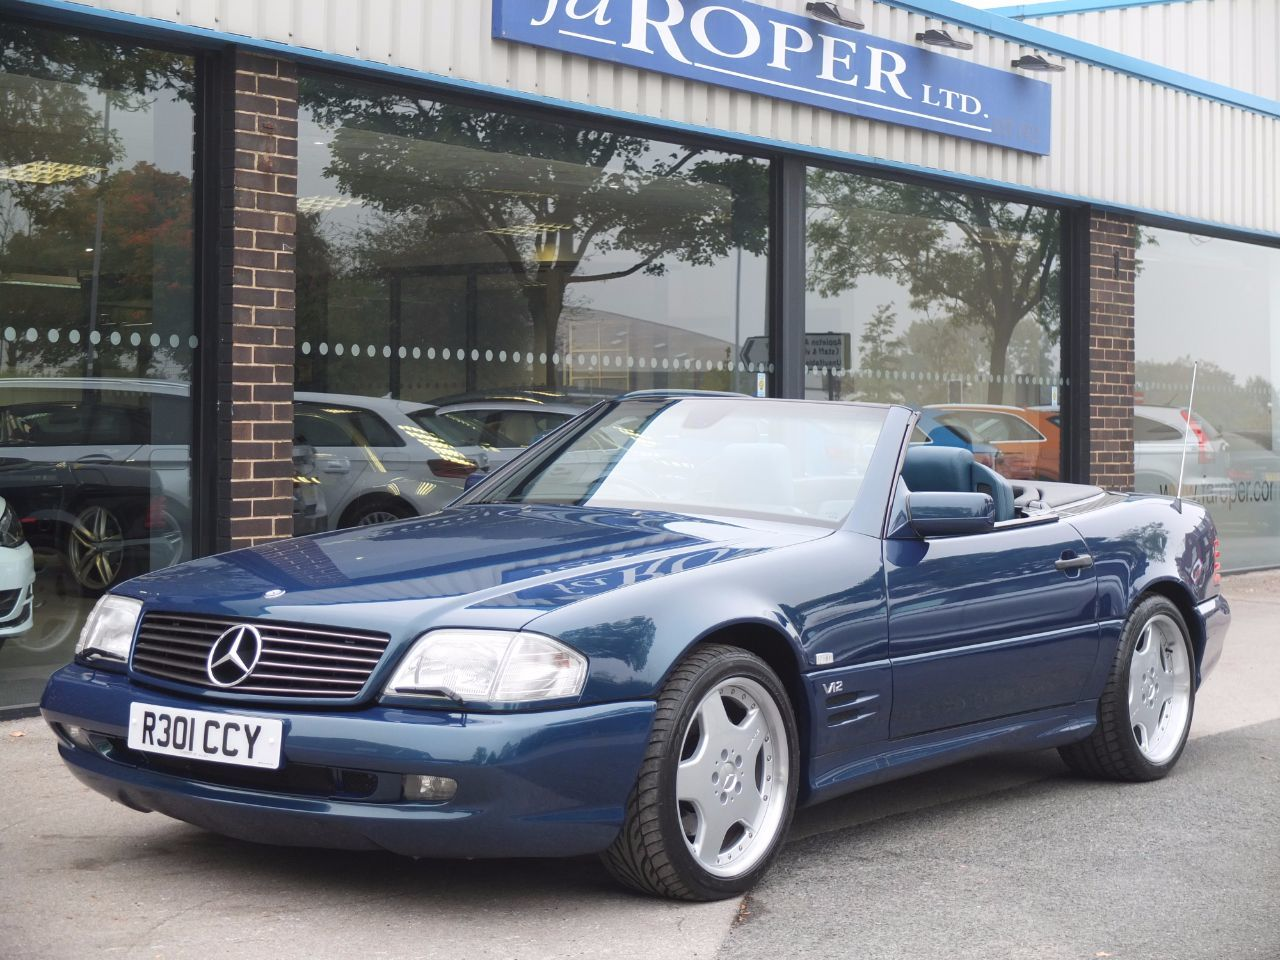 Used Cars Bradford Second Hand West Yorkshire Fa Roper Ltd Mercedes Benz Paint 600 60 Sl Auto Convertible Petrol Designo Vario Finishmercedes